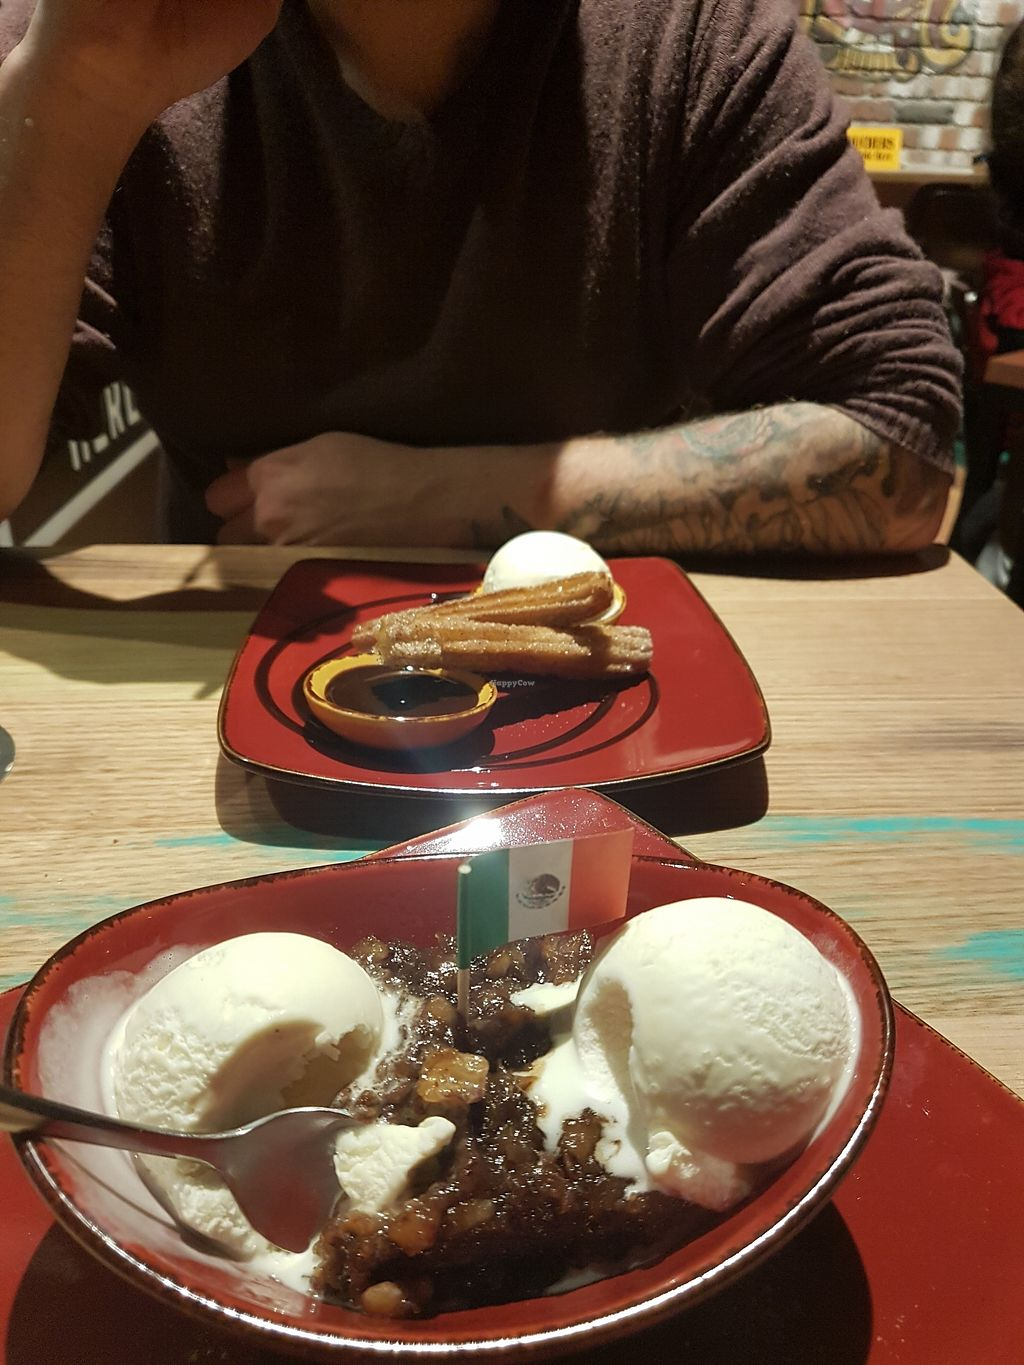 """Photo of Montezuma's  by <a href=""""/members/profile/ChristineOrdner"""">ChristineOrdner</a> <br/>Vegan sticky date pudding with soy vanilla ice cream + vegan churros! <br/> October 6, 2017  - <a href='/contact/abuse/image/102415/312483'>Report</a>"""